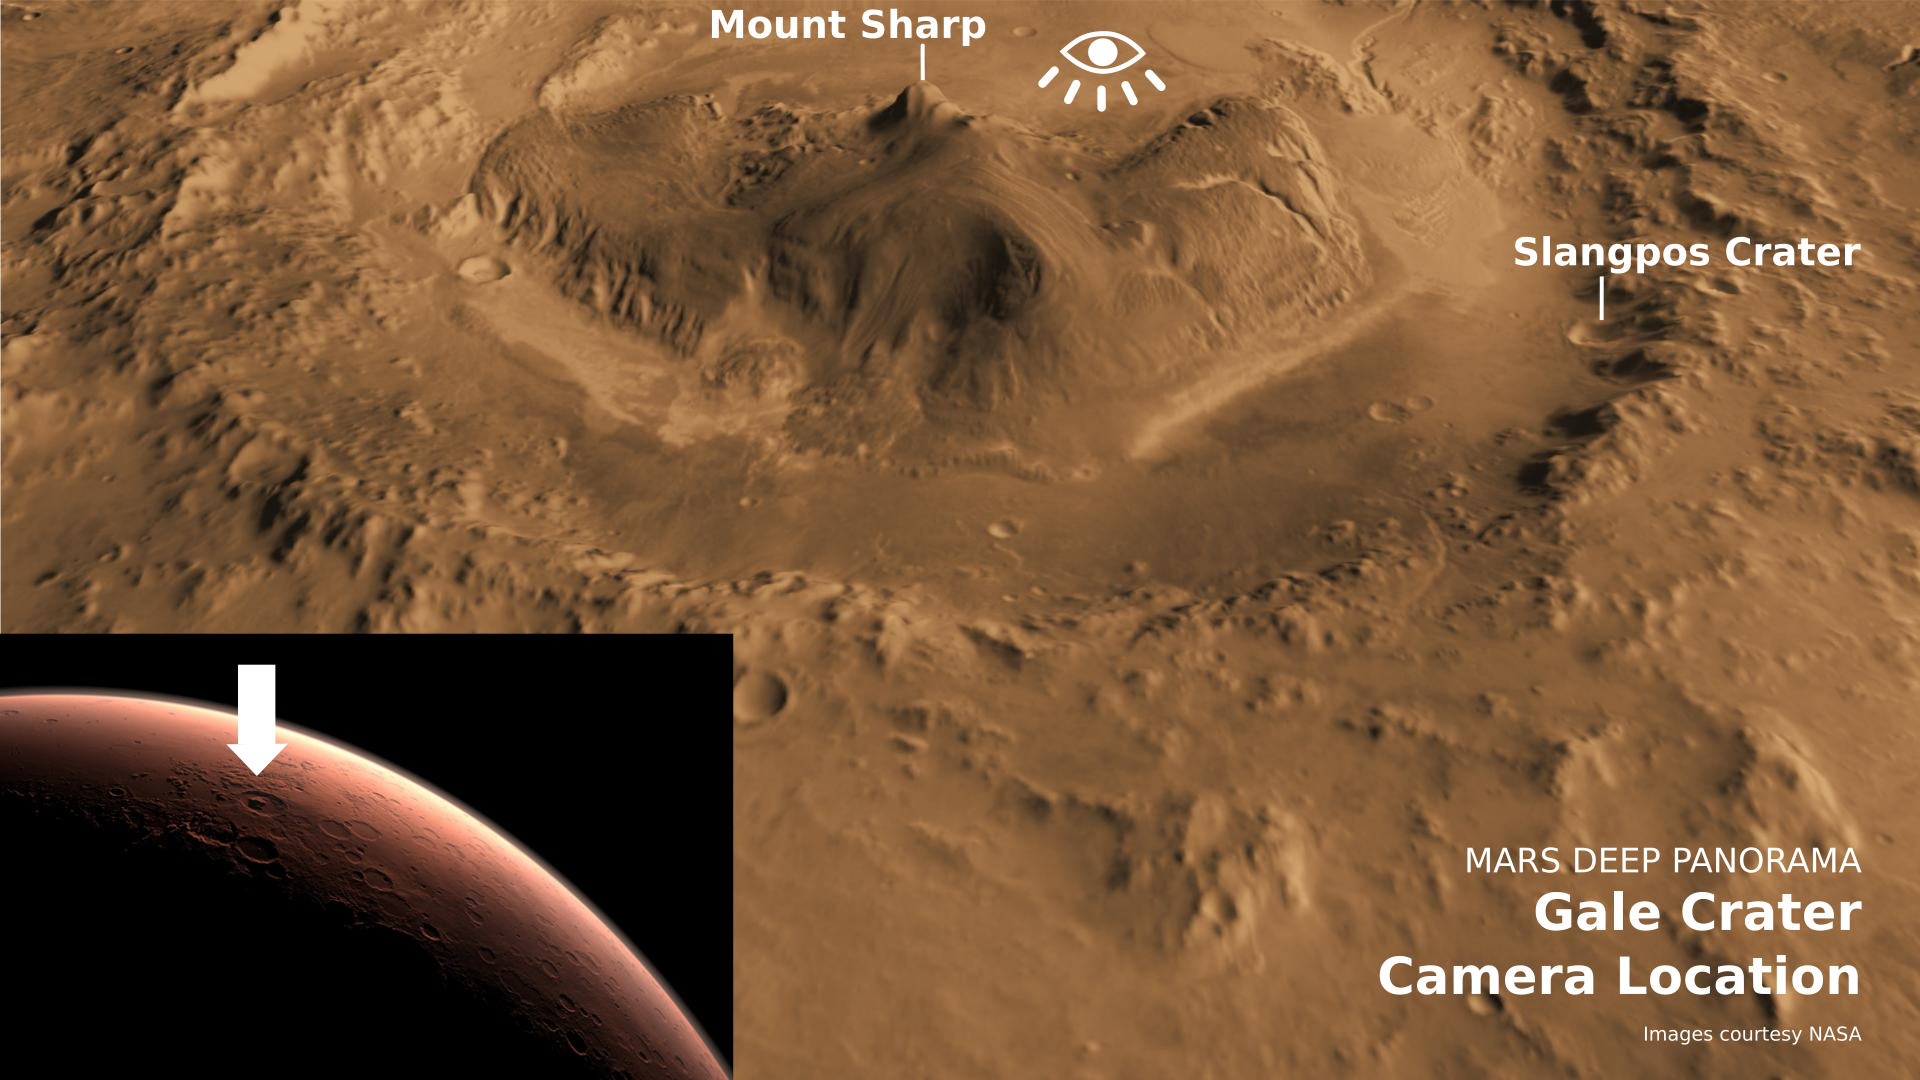 Mars panorama context images